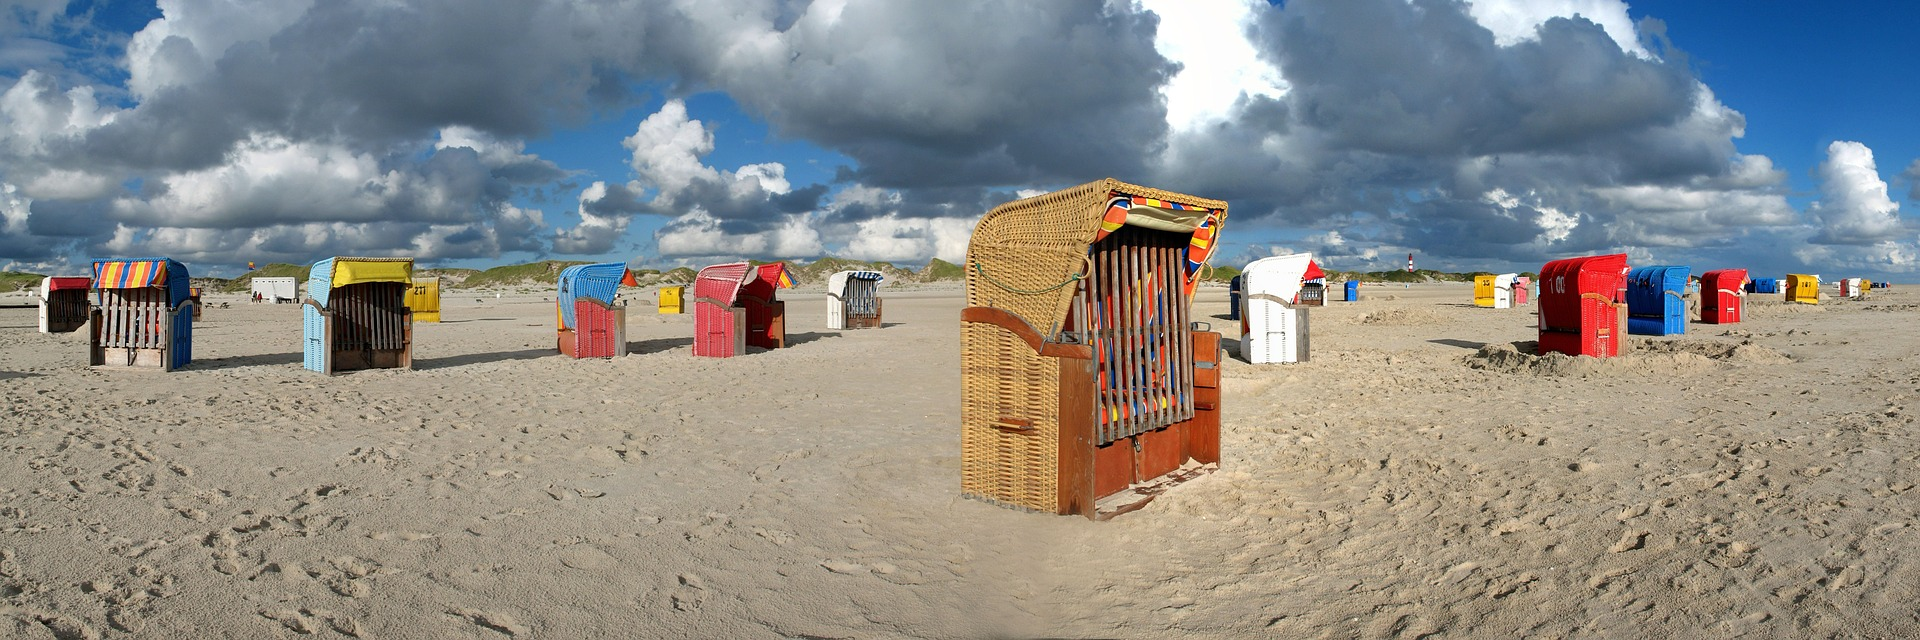 Nordsee Inseln